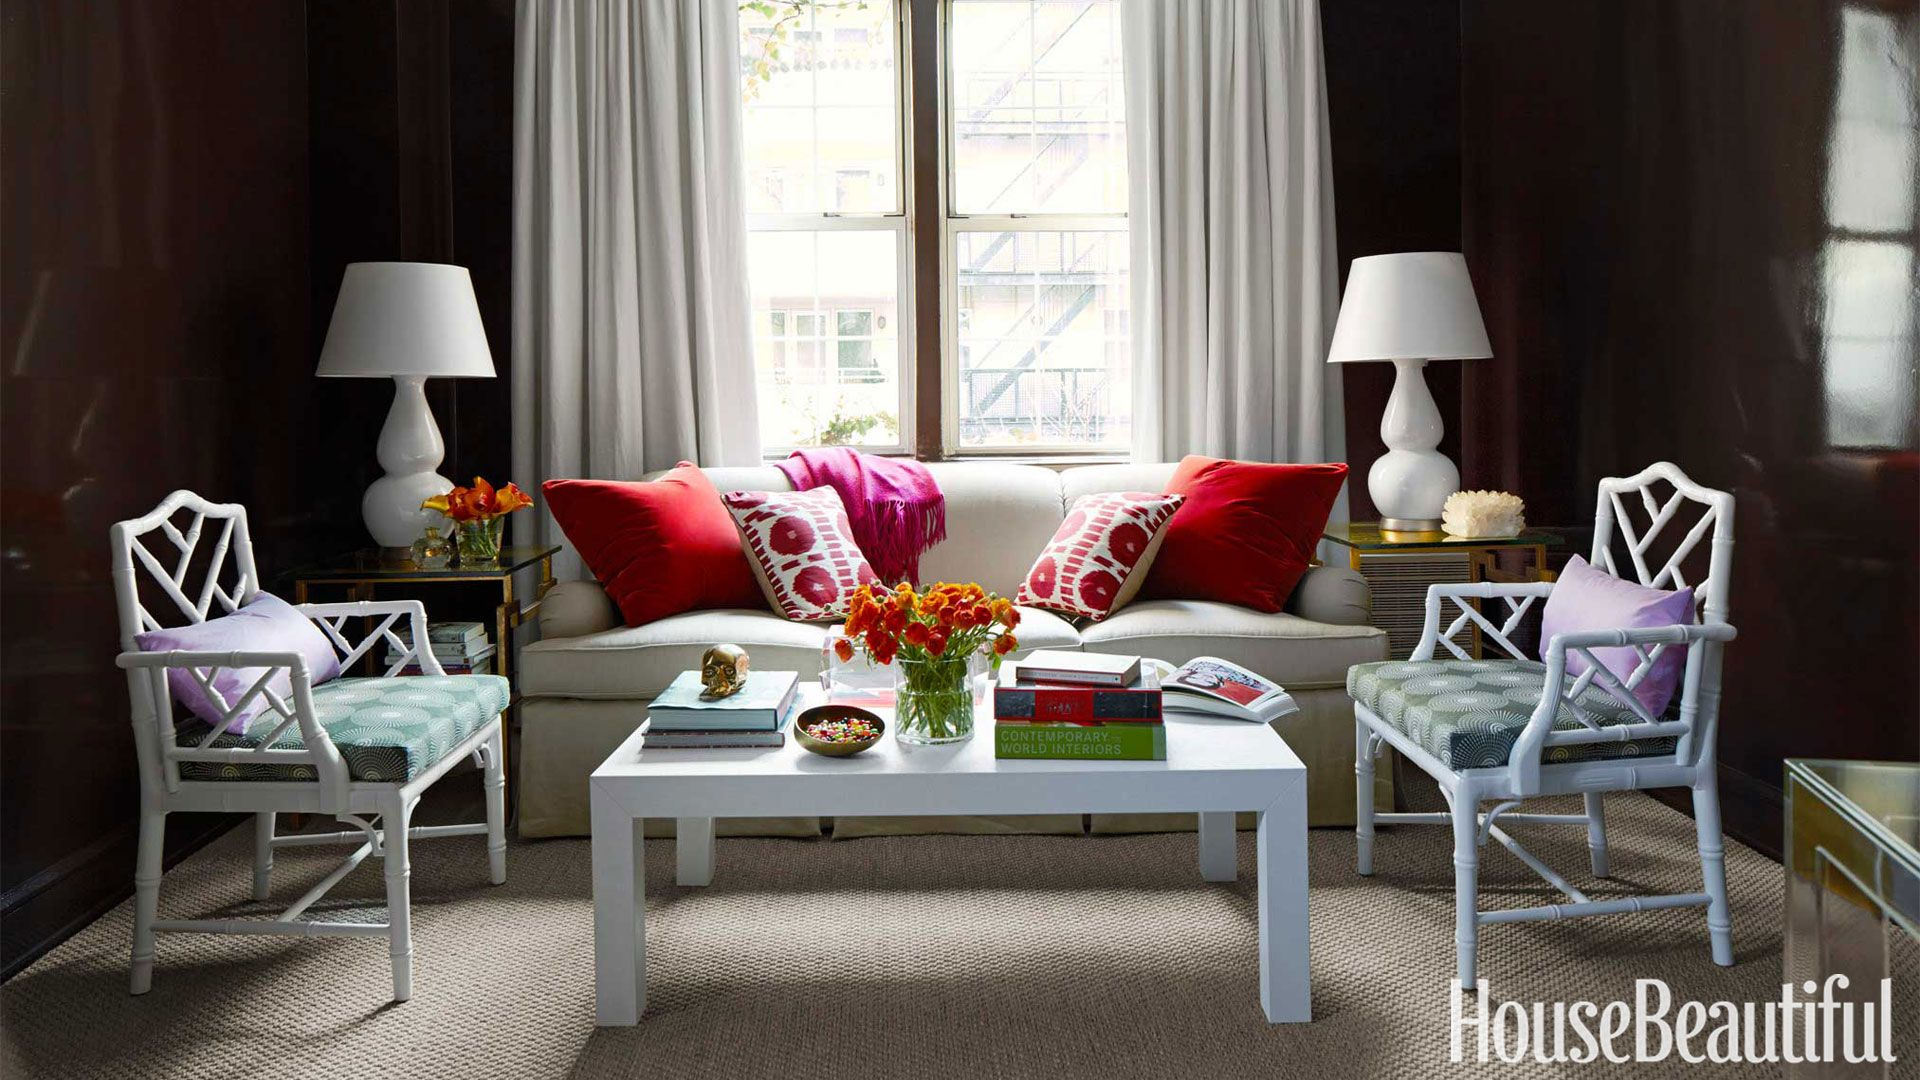 12 Important Things to Know Before You Buy a Sofa